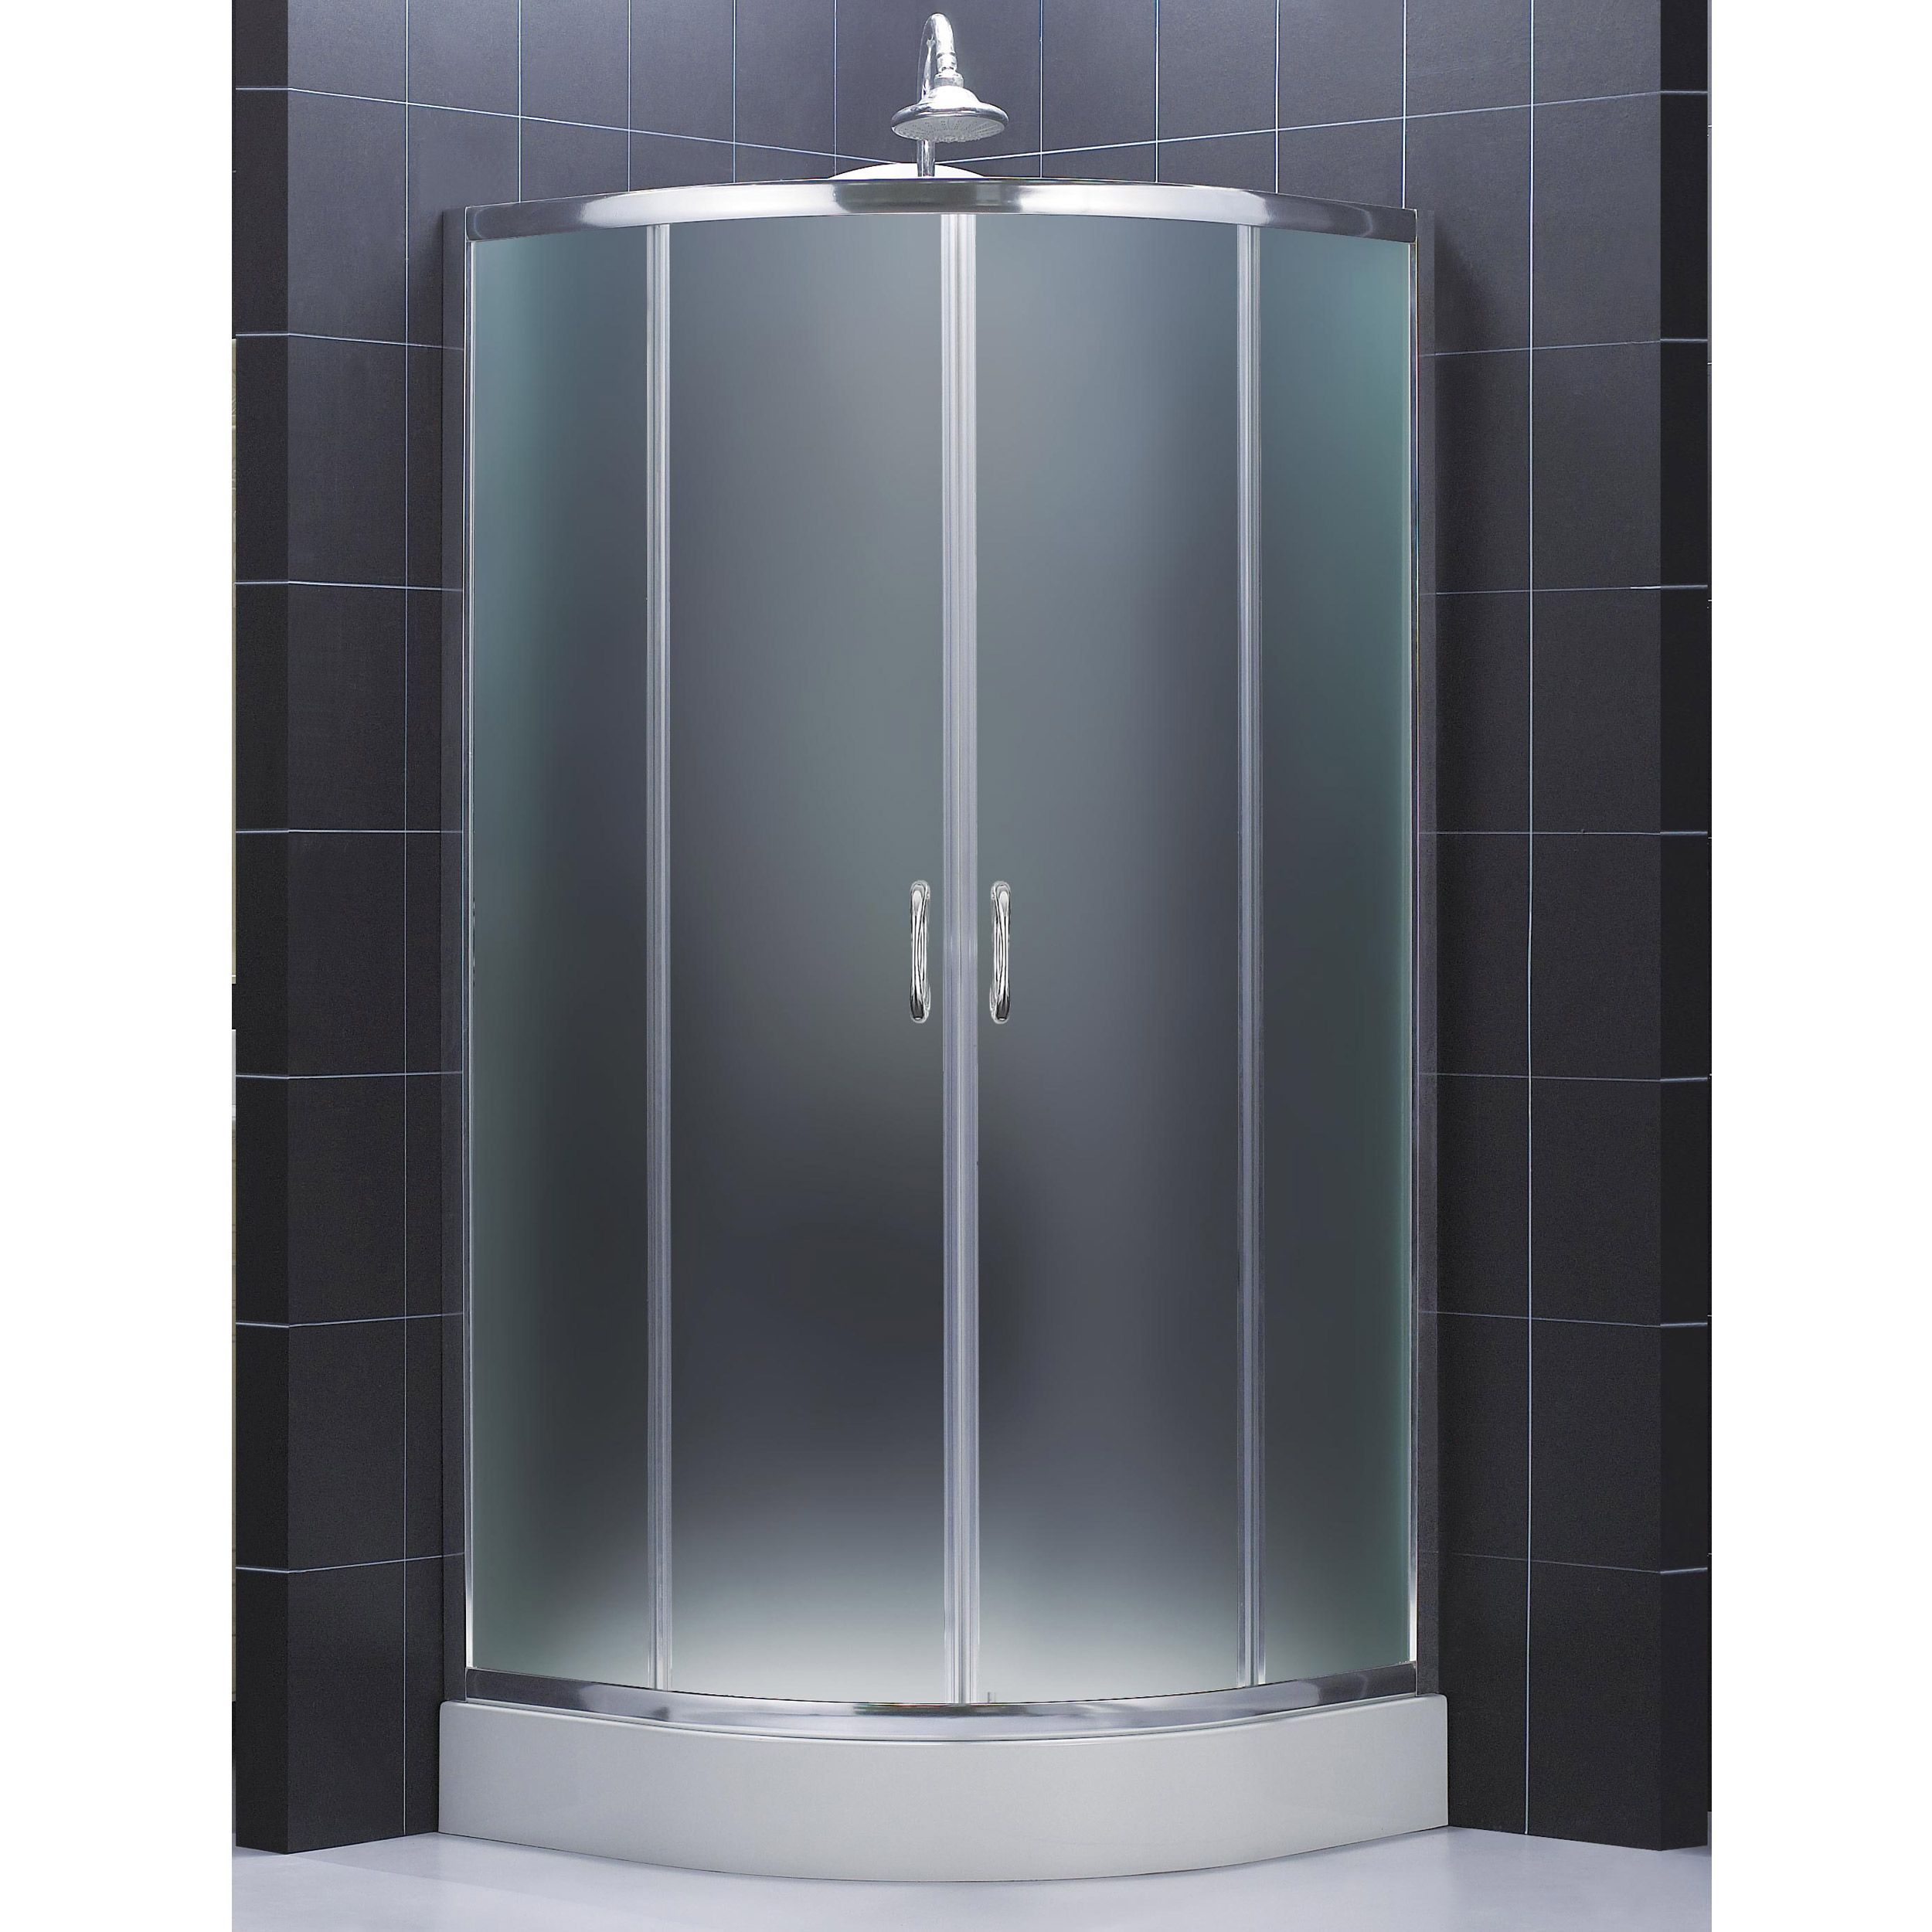 dreamline prime frameless sliding shower enclosure and slimline 33 in by 33 in quarter round shower base by dreamline